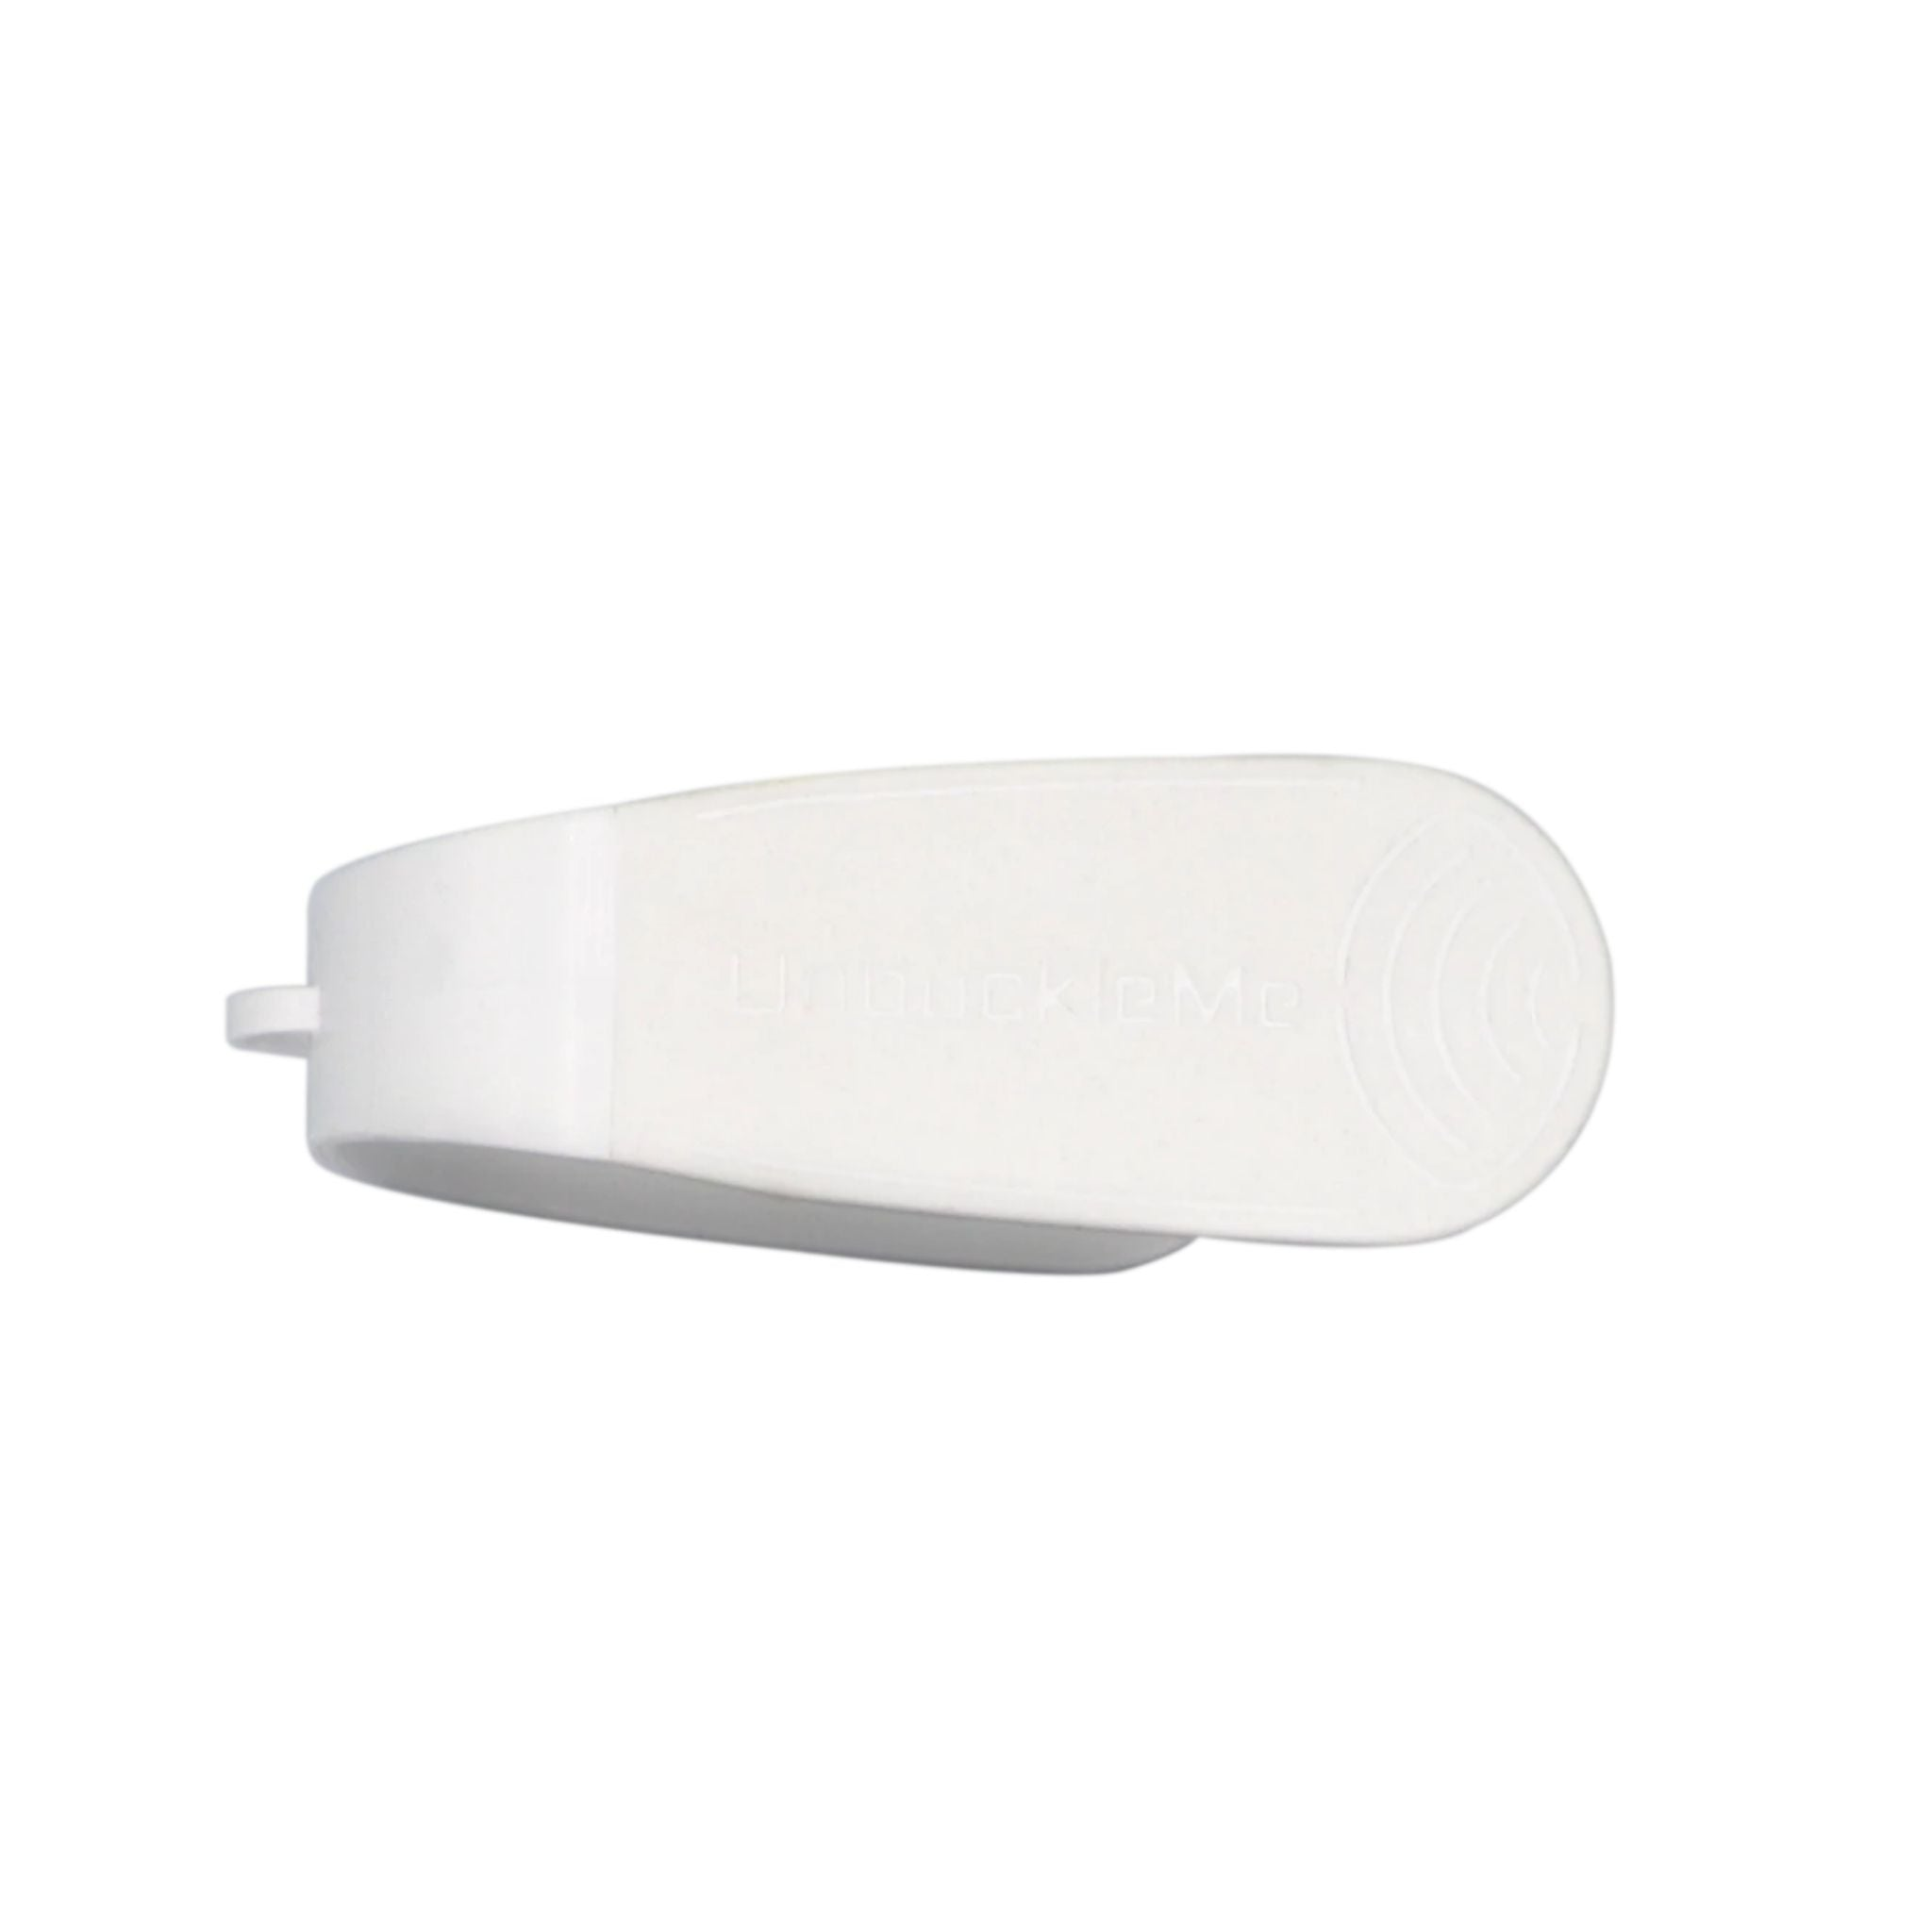 clek unbuckle me, white and off white rounded device for unbuckling car seat buckles